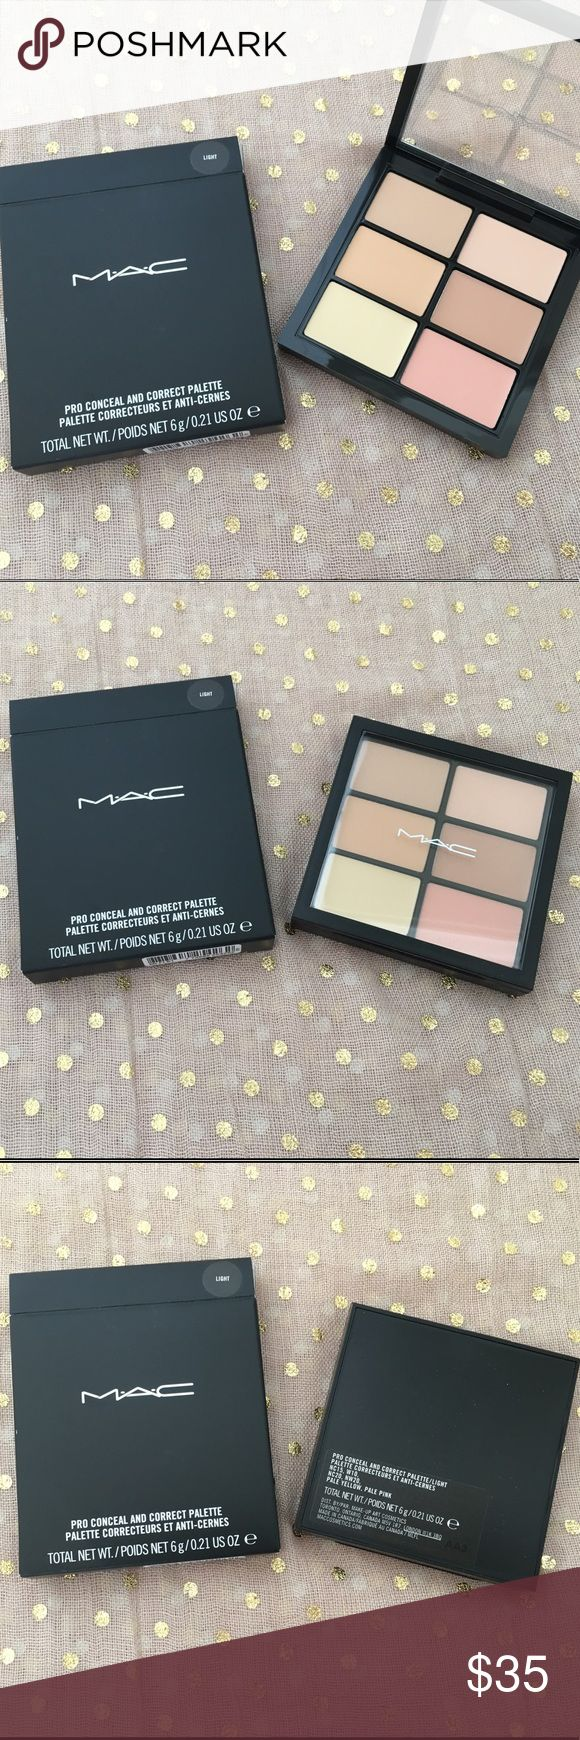 MAC Studio Conceal and Correct Palette Light New in Box, never used or searched. M·A·C Studio Conceal and Correct Palette / Light. A palette with four concealers and two corrector shades to match any skin tone. Makeup Concealer